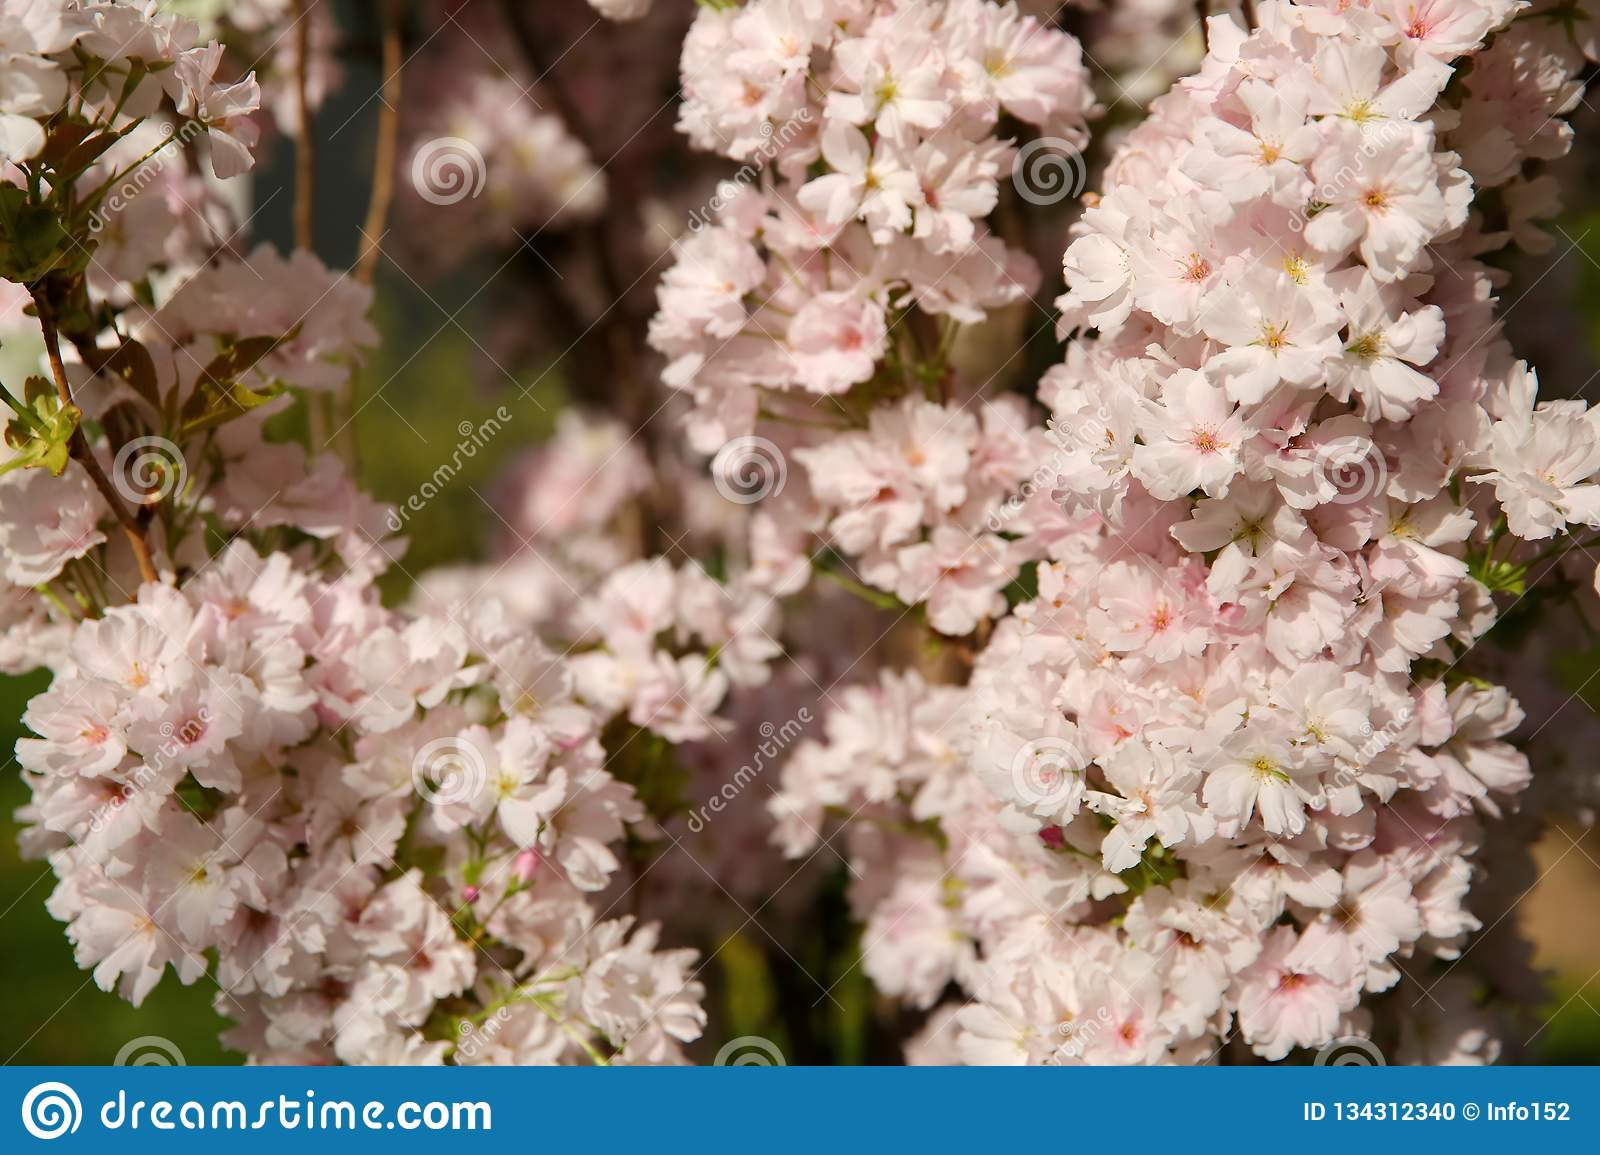 Cherry Pie Is A Decorative Tree Blooming Profusely With White